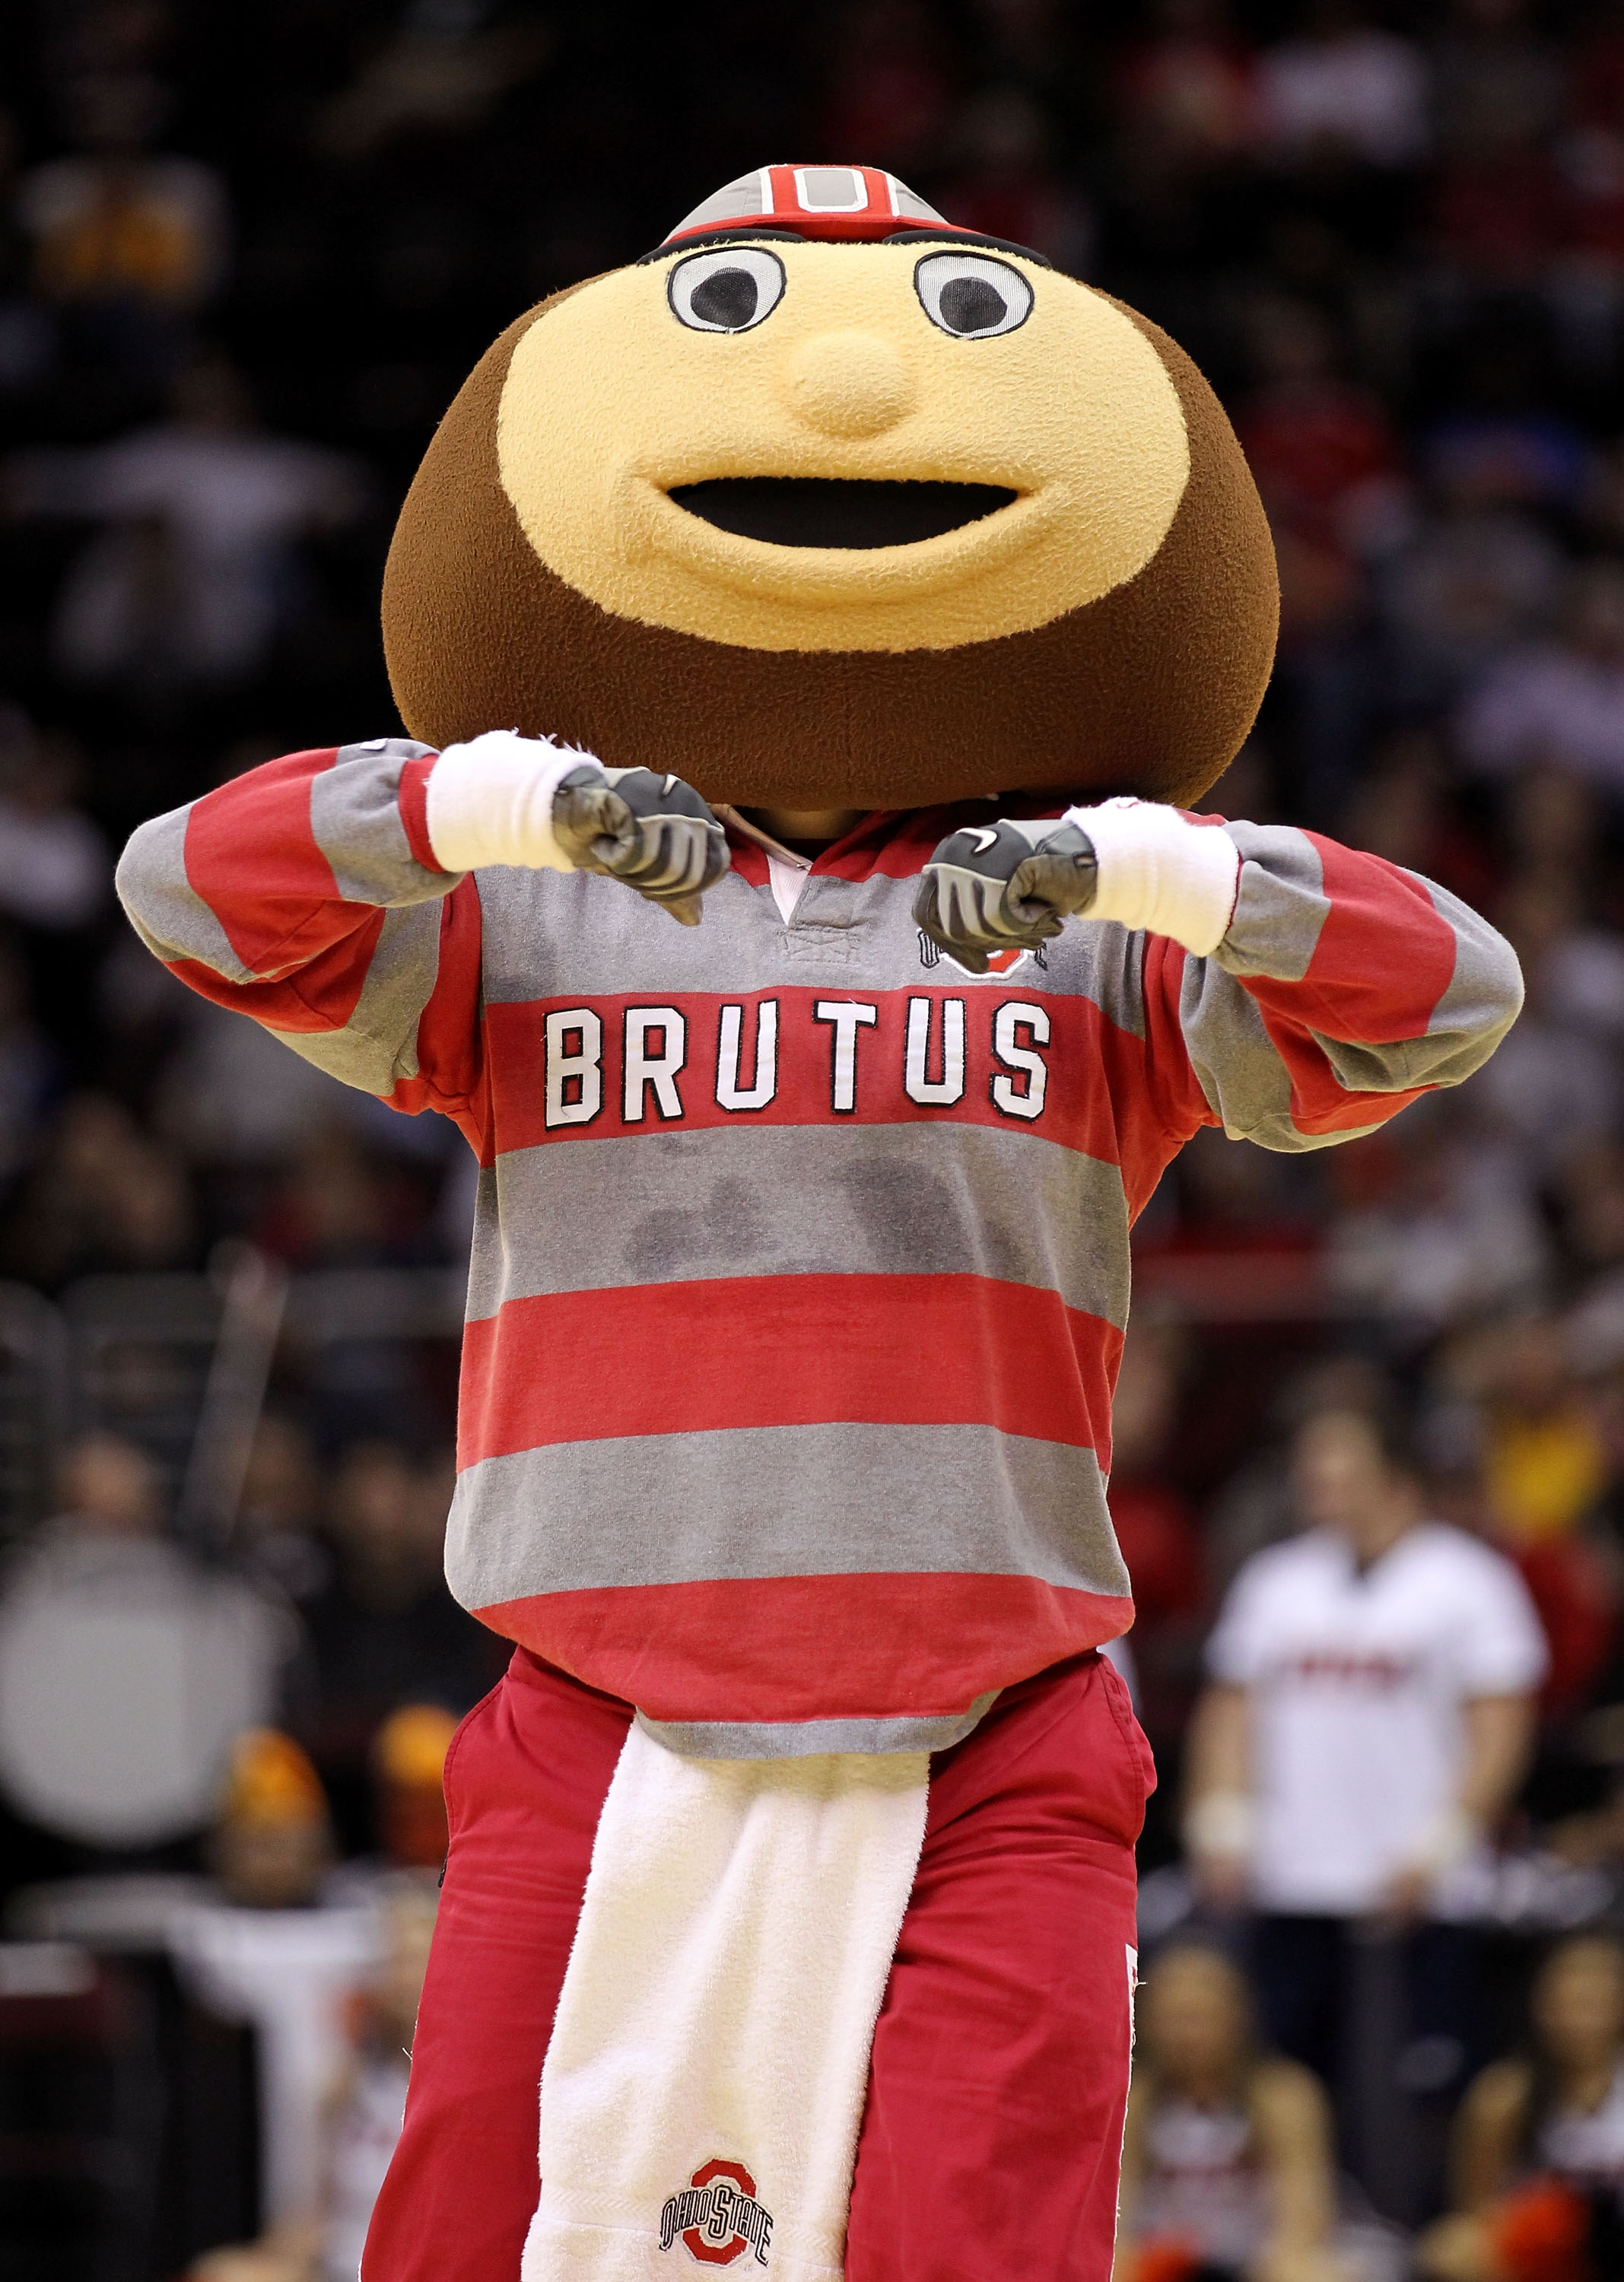 CLEVELAND, OH - MARCH 18: Brutus the Ohio State Buckeyes mascot walks on the court during the game against the Texas-San Antonio Roadrunners during the second round of the 2011 NCAA men's basketball tournament at Quicken Loans Arena on March 18, 2011 in C